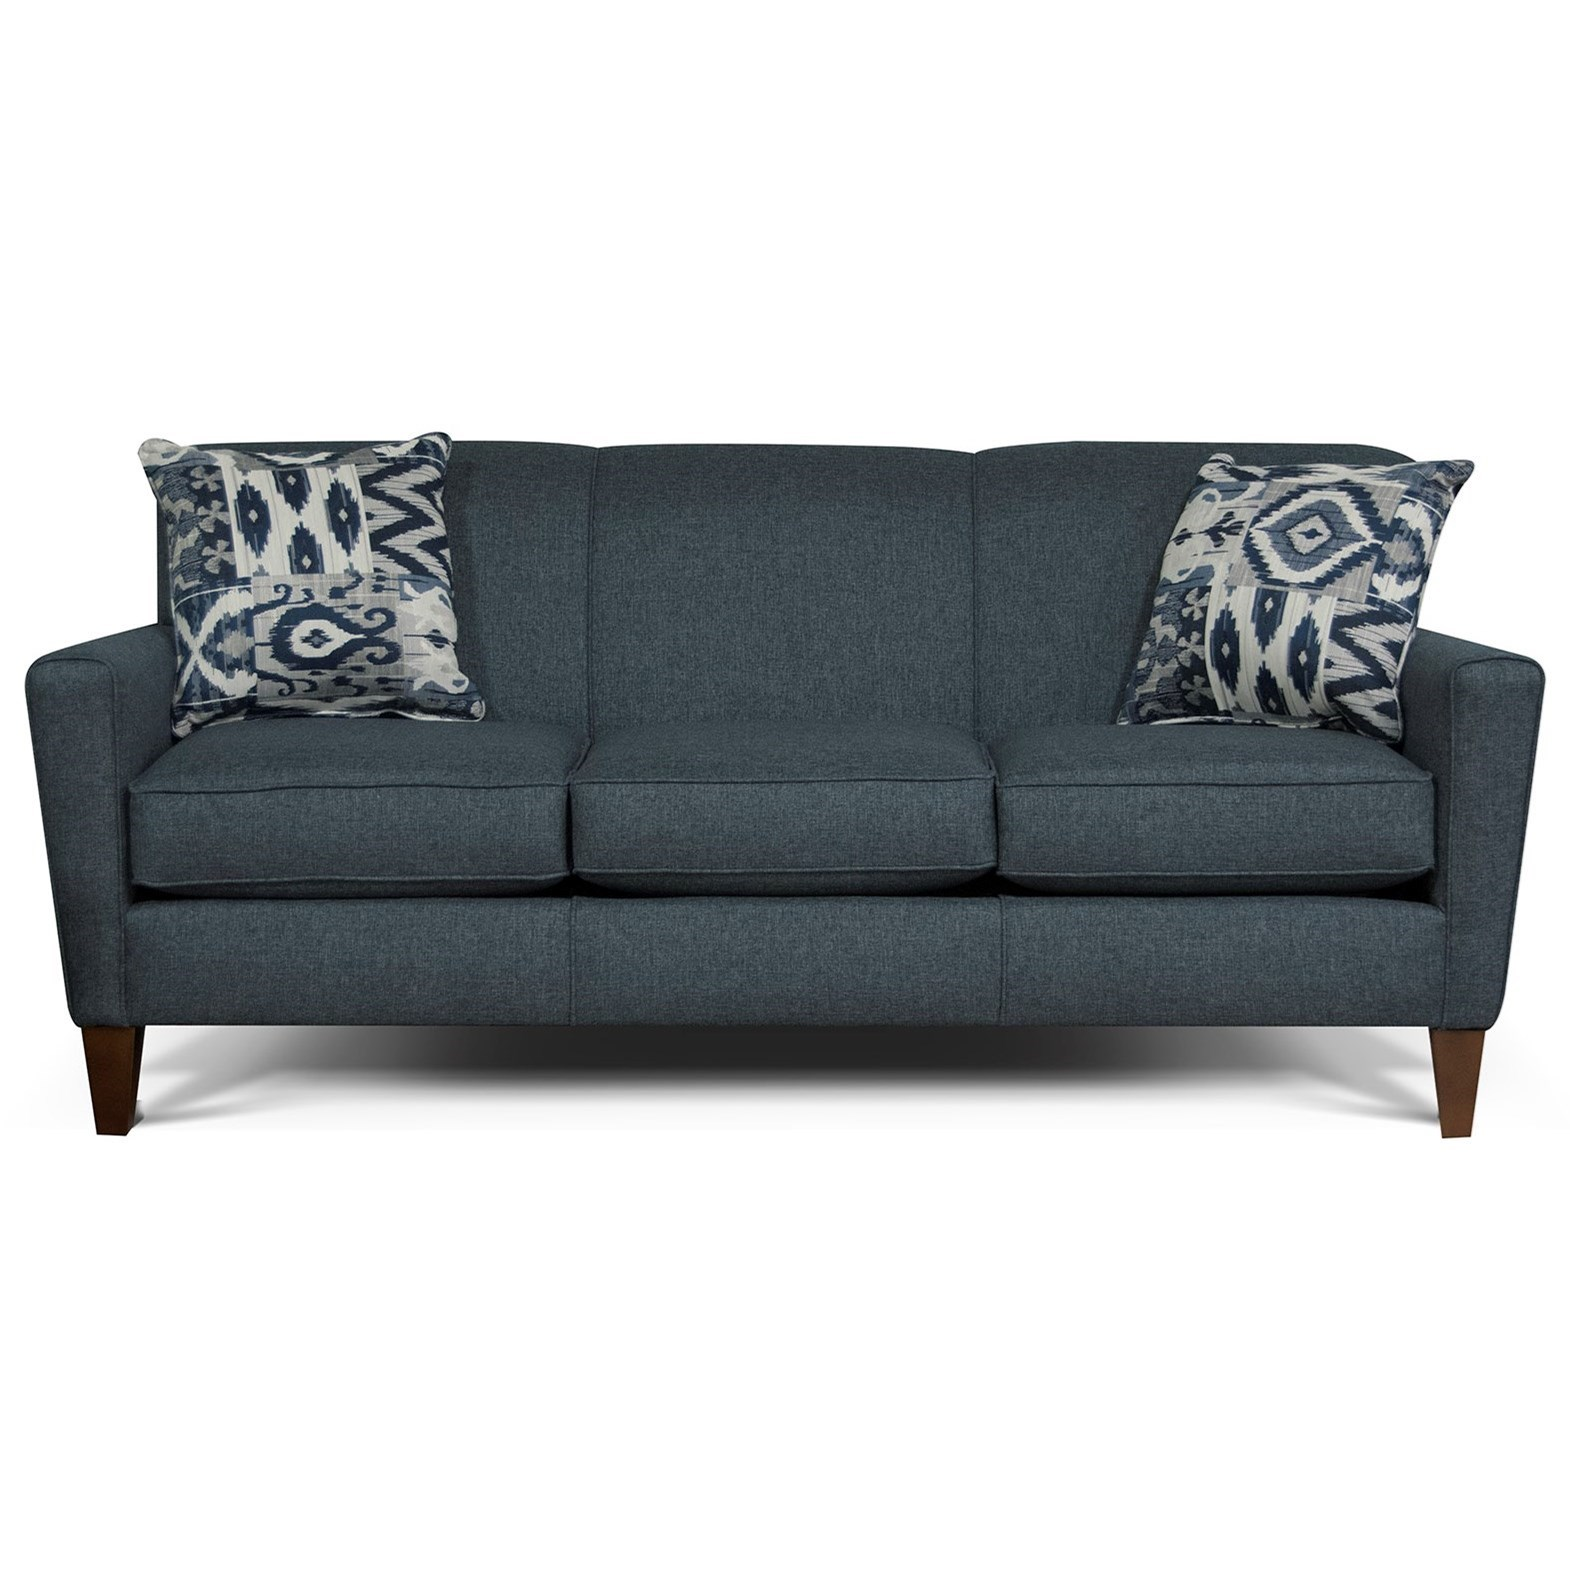 Collegedale Upholstered Sofa by England at Suburban Furniture